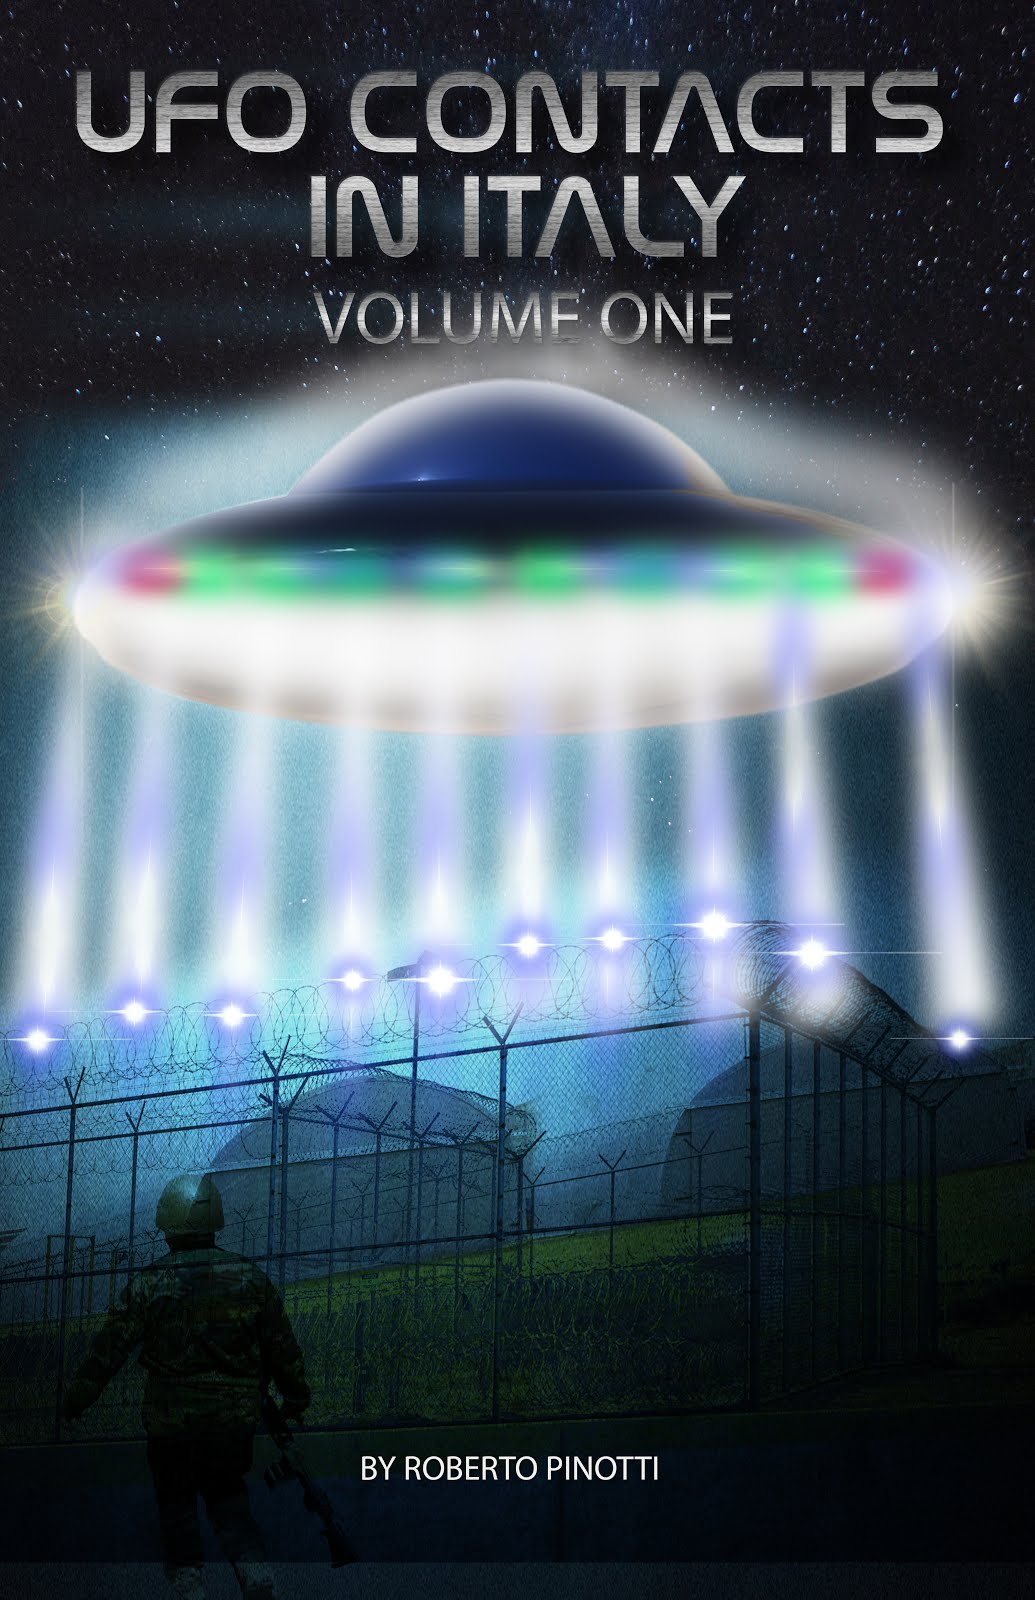 UFO CONTACTS IN ITALY - VOLUME ONE